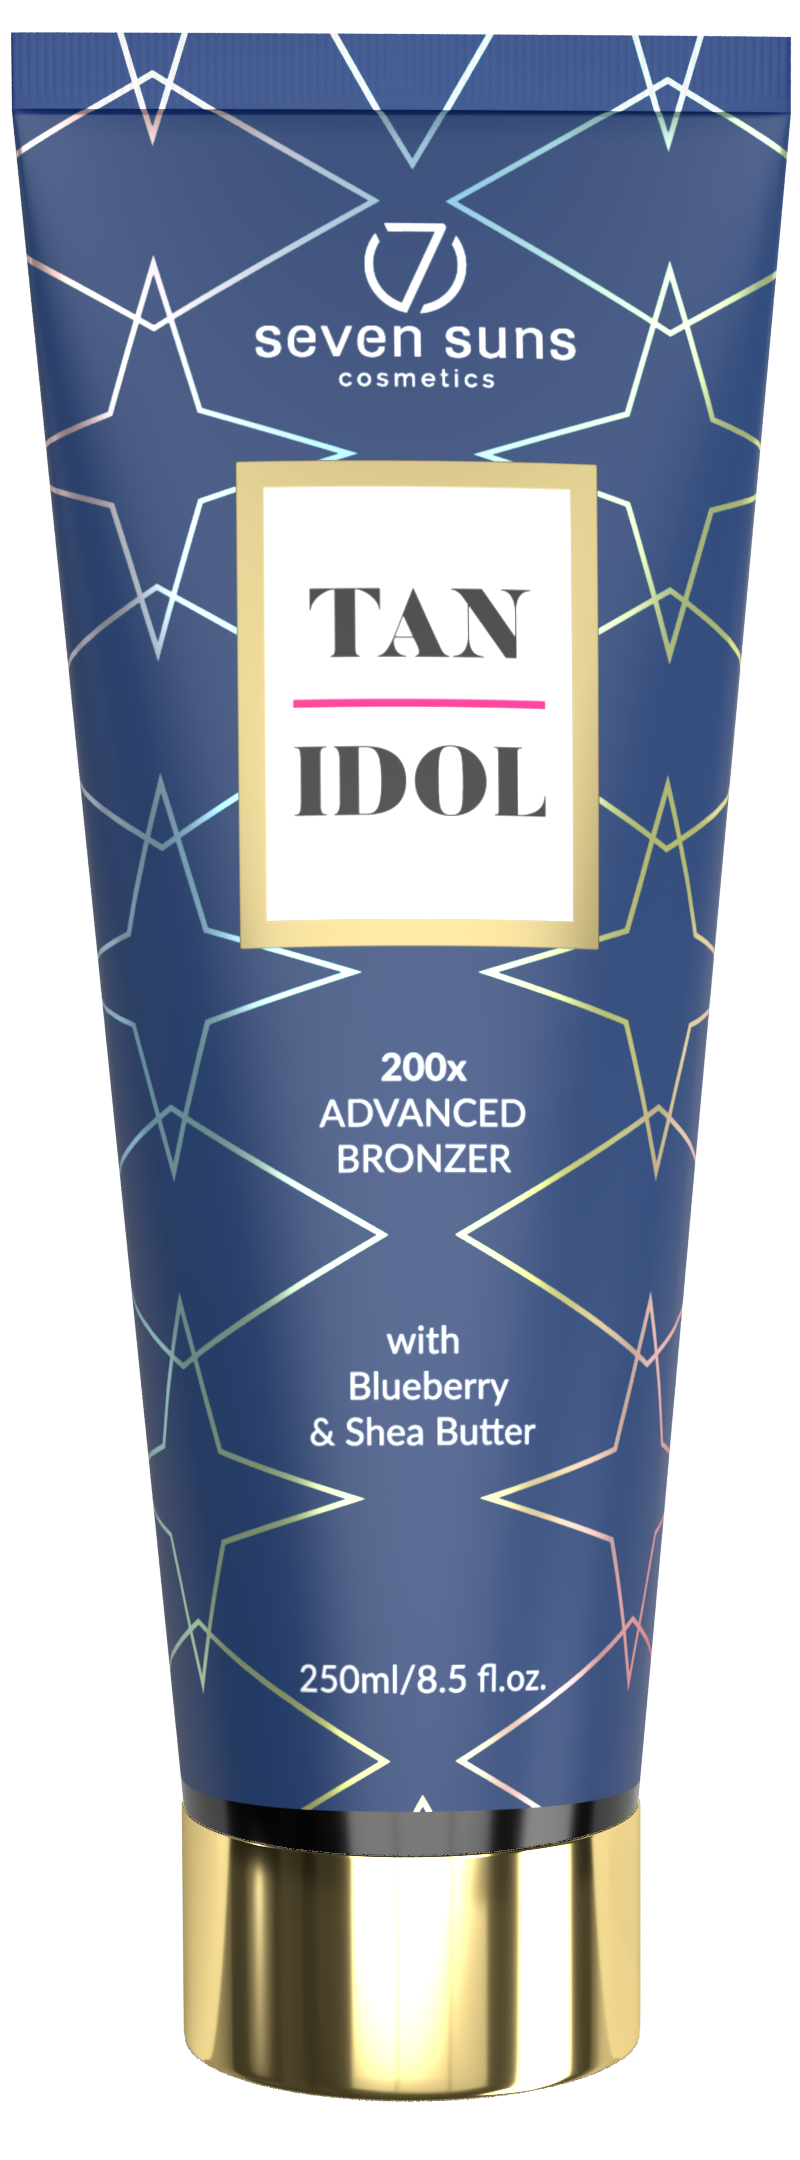 Tan Idol bronzer tube